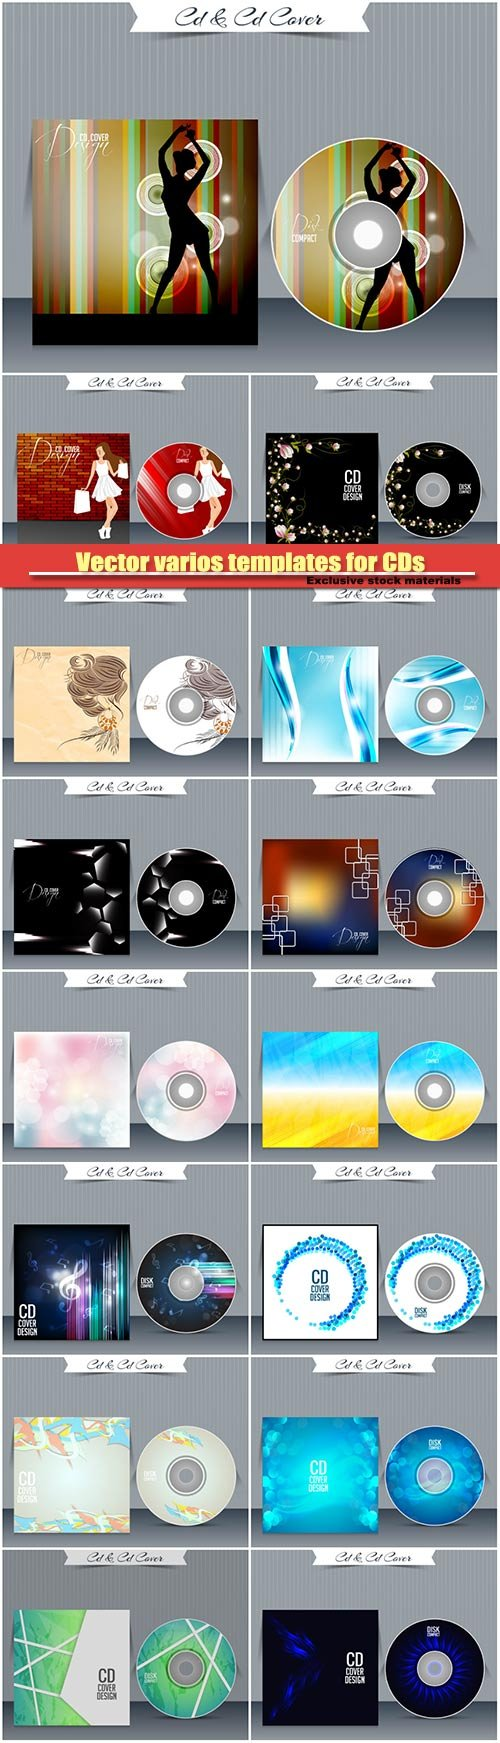 Vector various templates for CDs